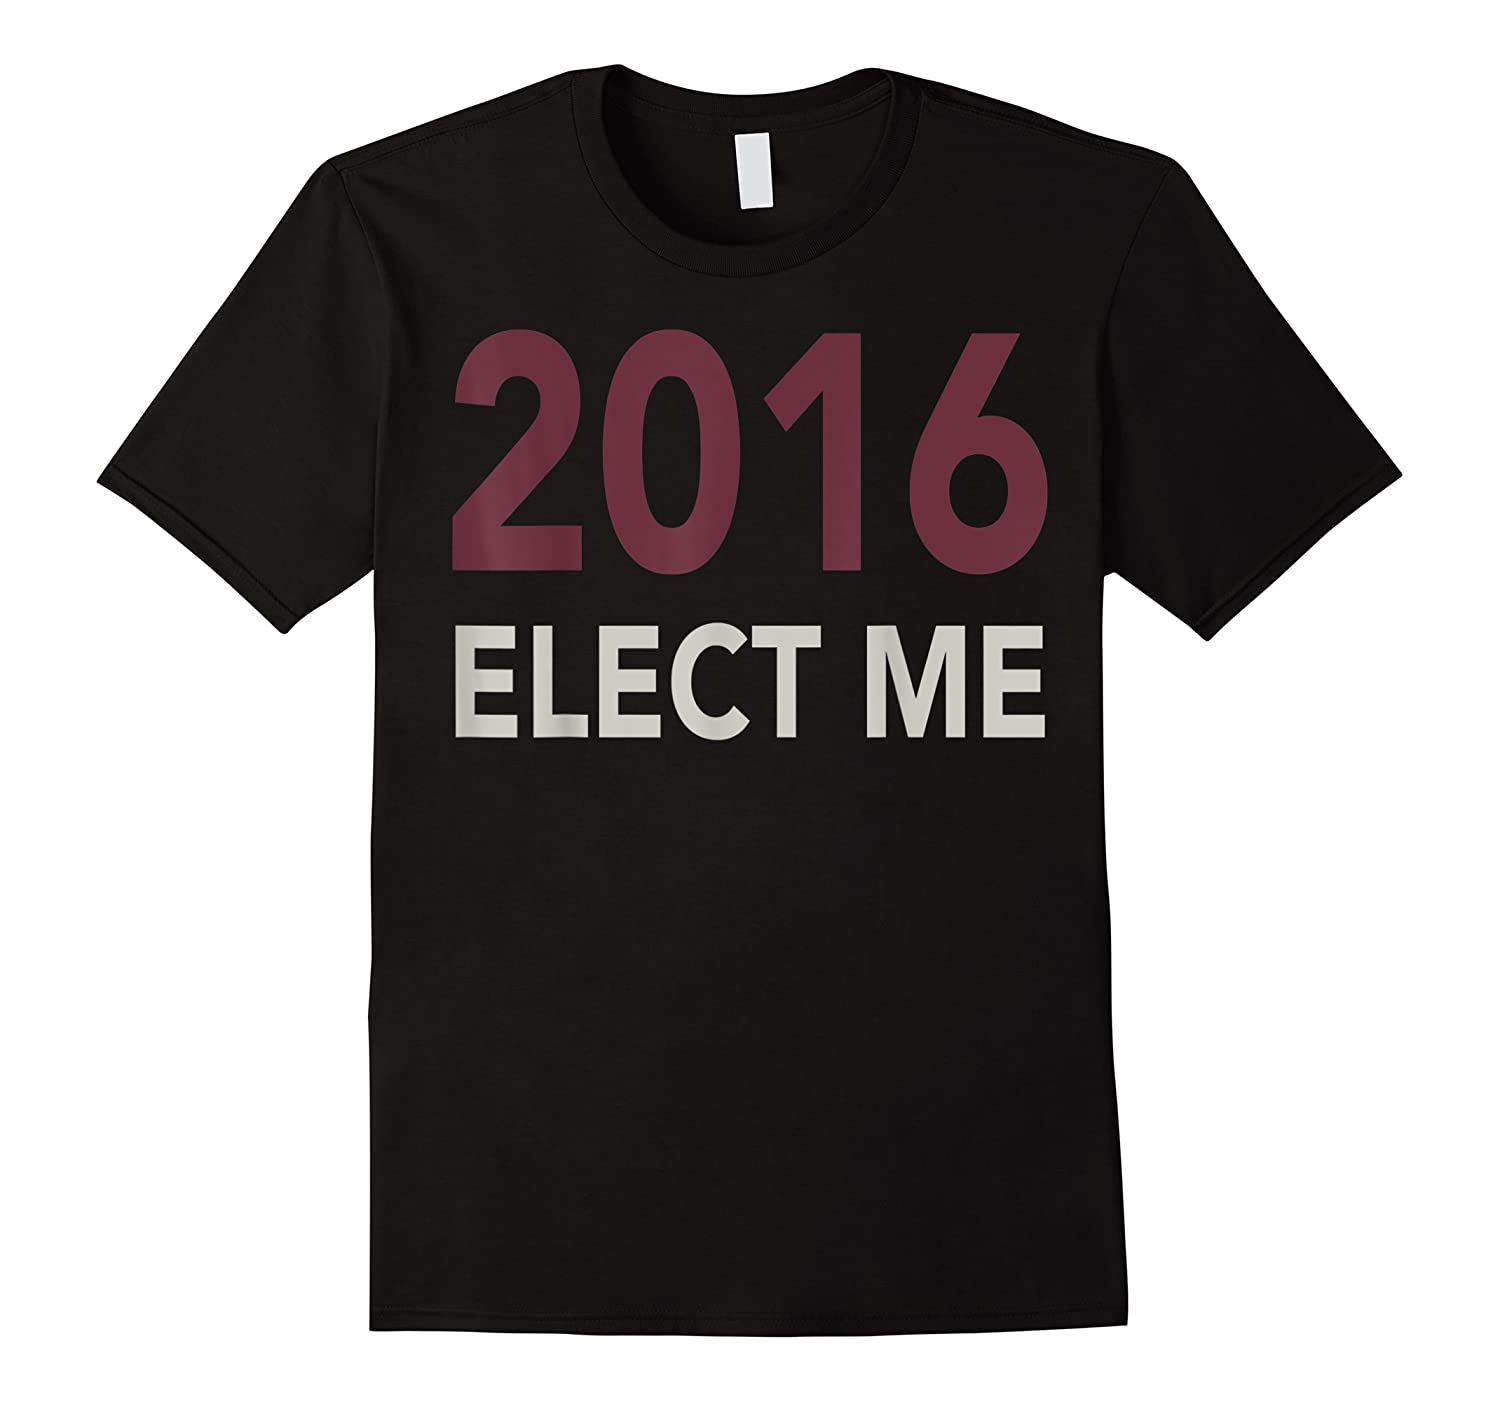 2016 Elect Me Voting Election Day Graphic T Shirt